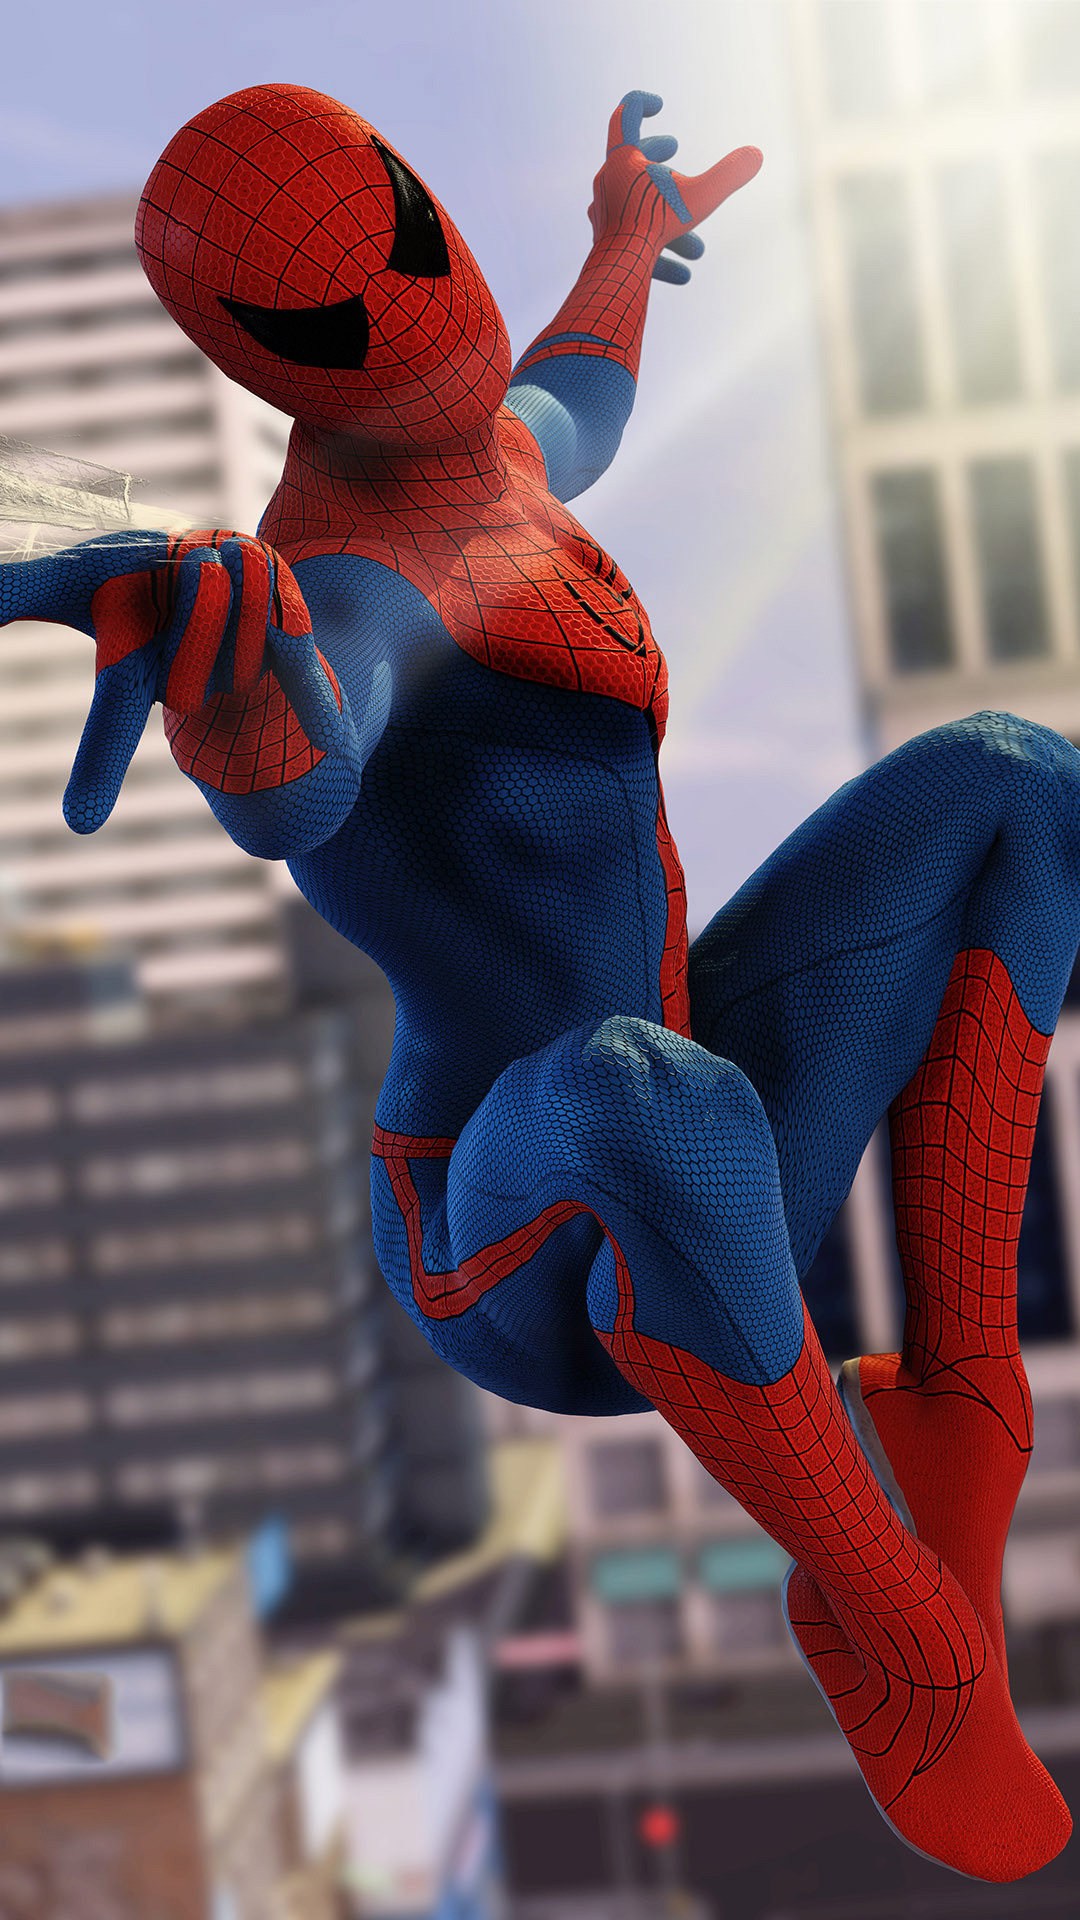 Spiderman in Civil War. Tap to see more The Spiderman iPhone wallpapers,  backgrounds,